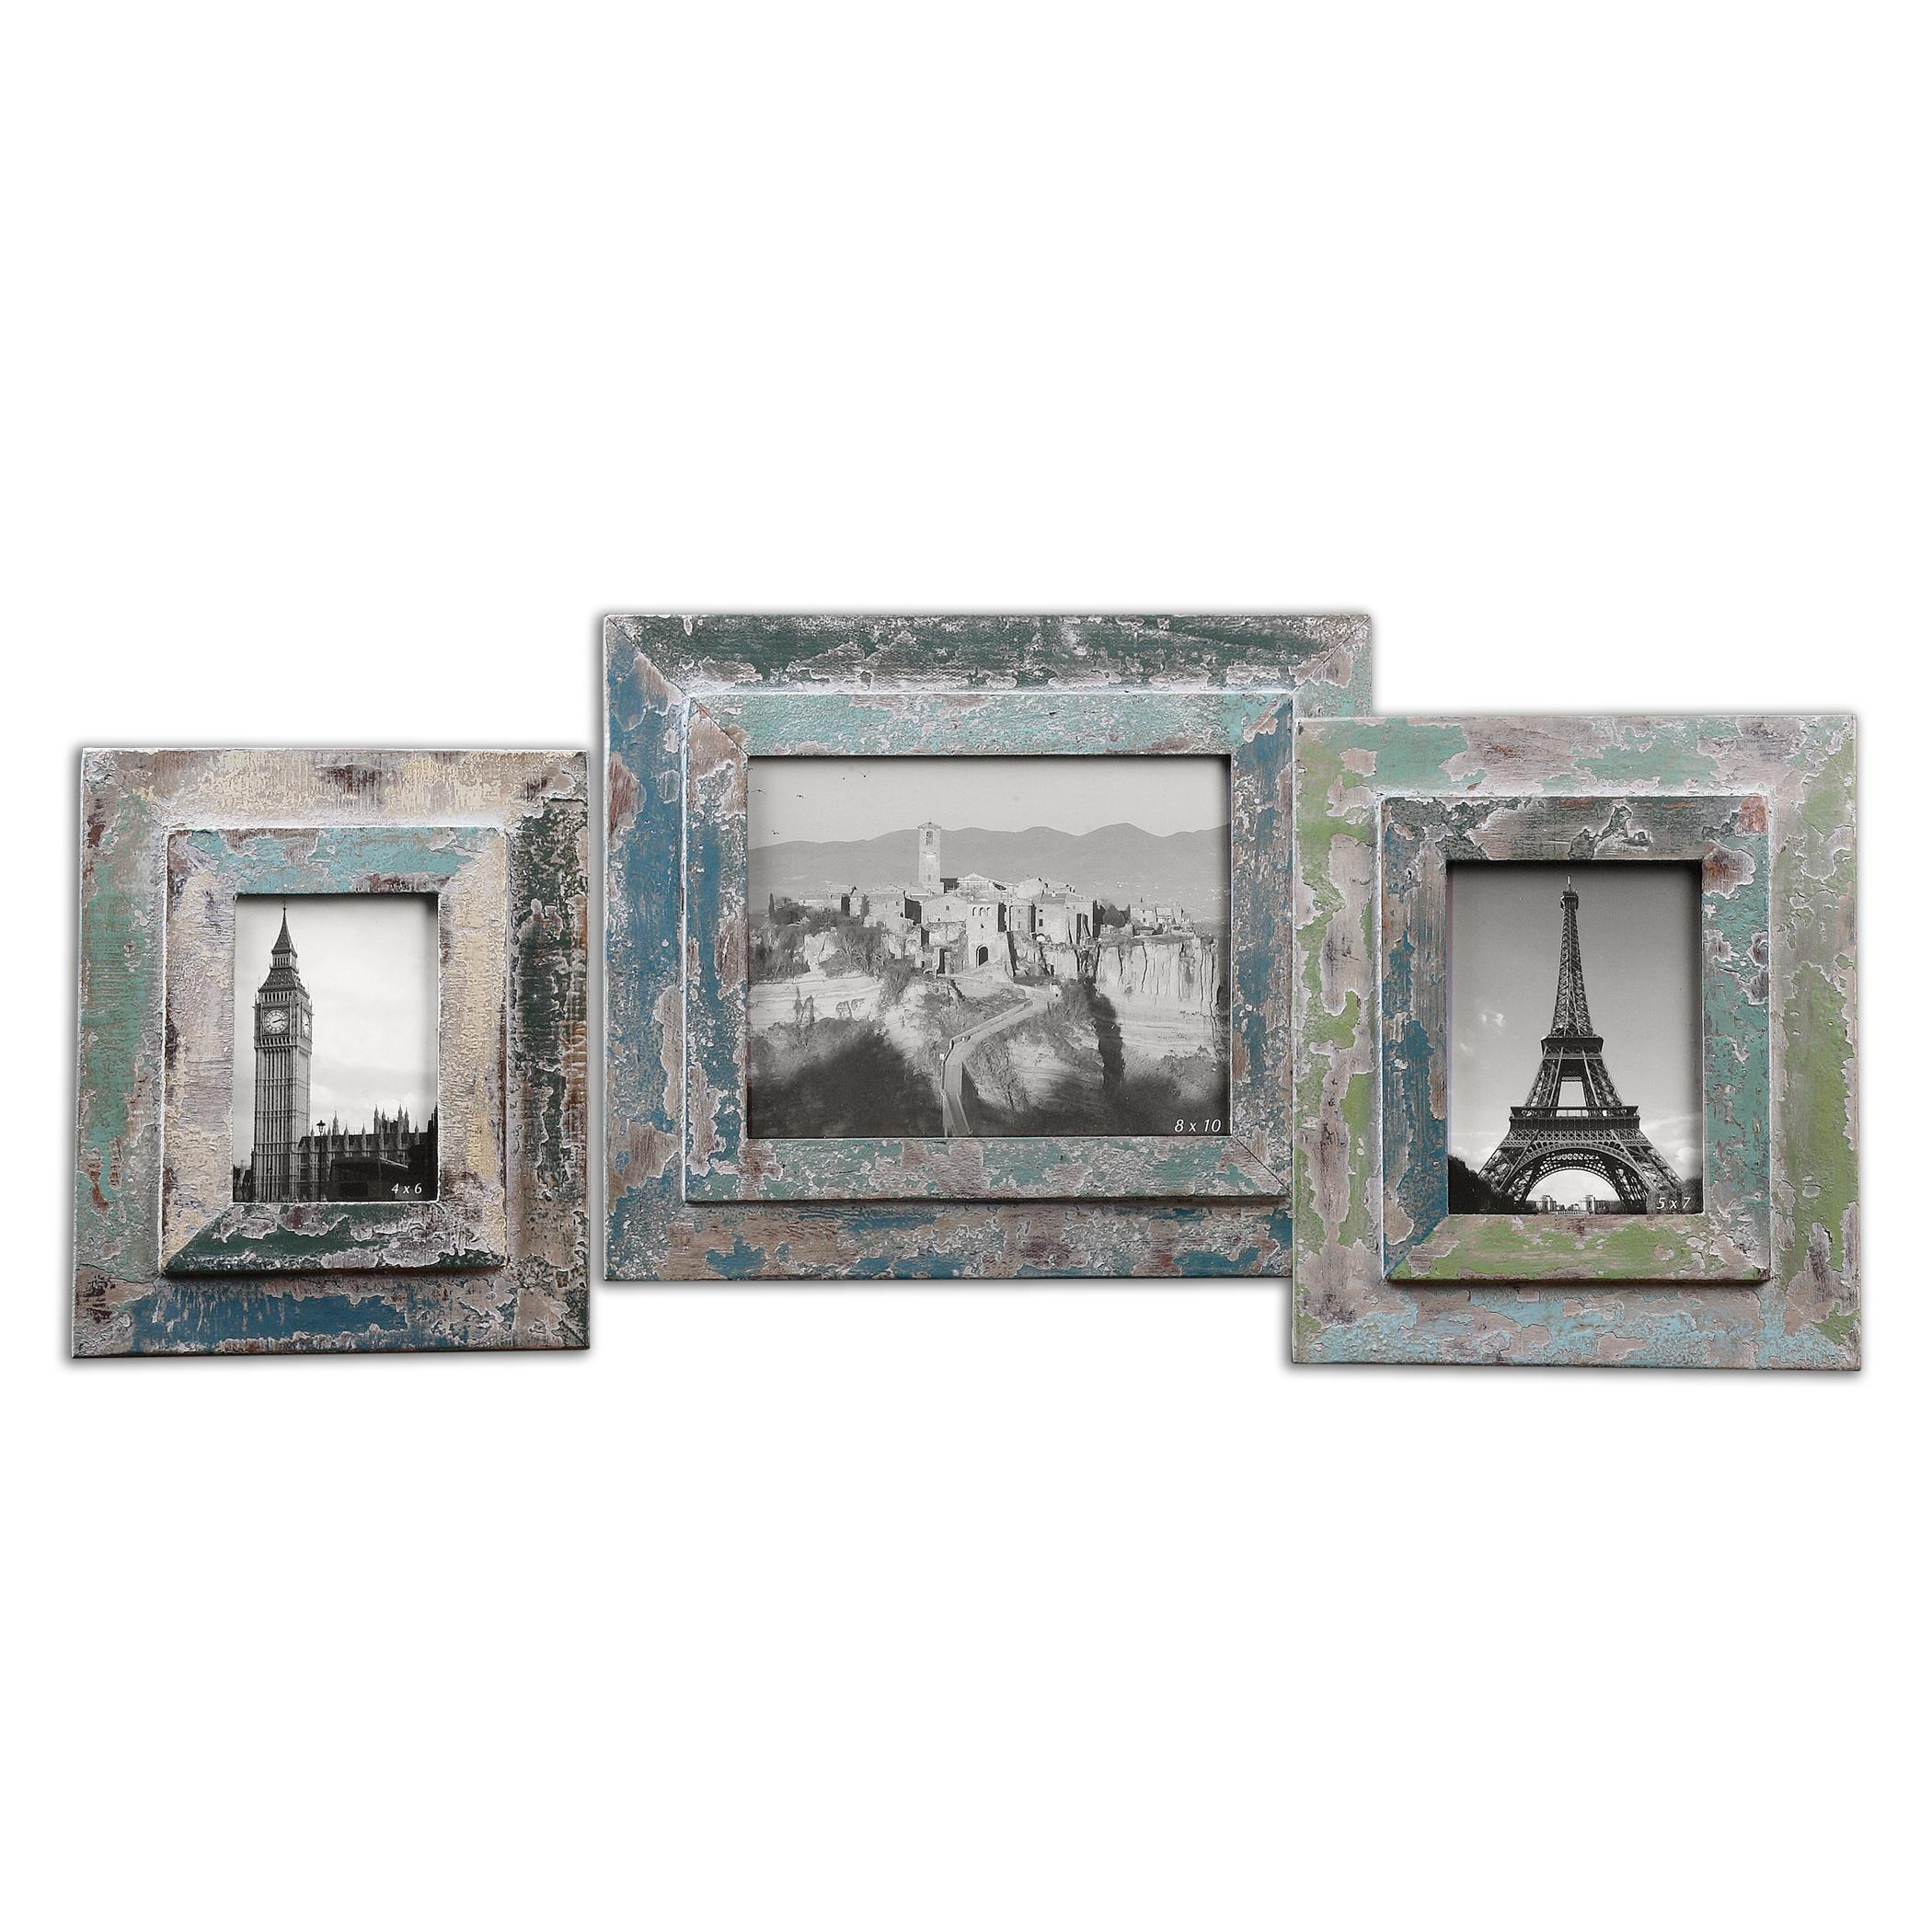 Uttermost Accessories Acheron Photo Frames, Set of 3 - Item Number: 18560